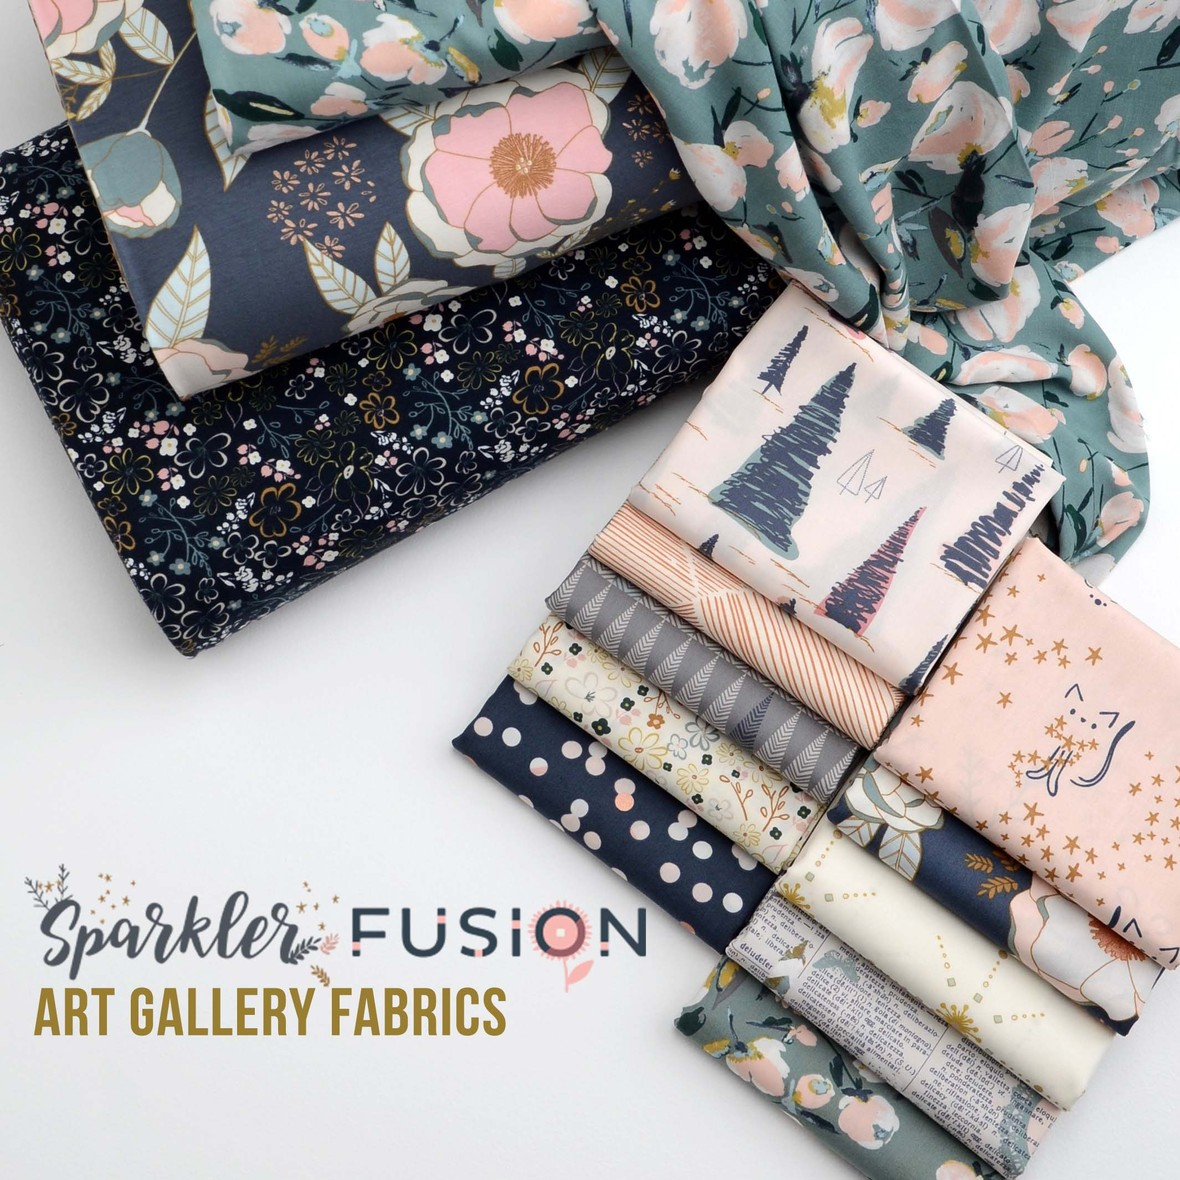 Sparkler Fusion Fabric Poster